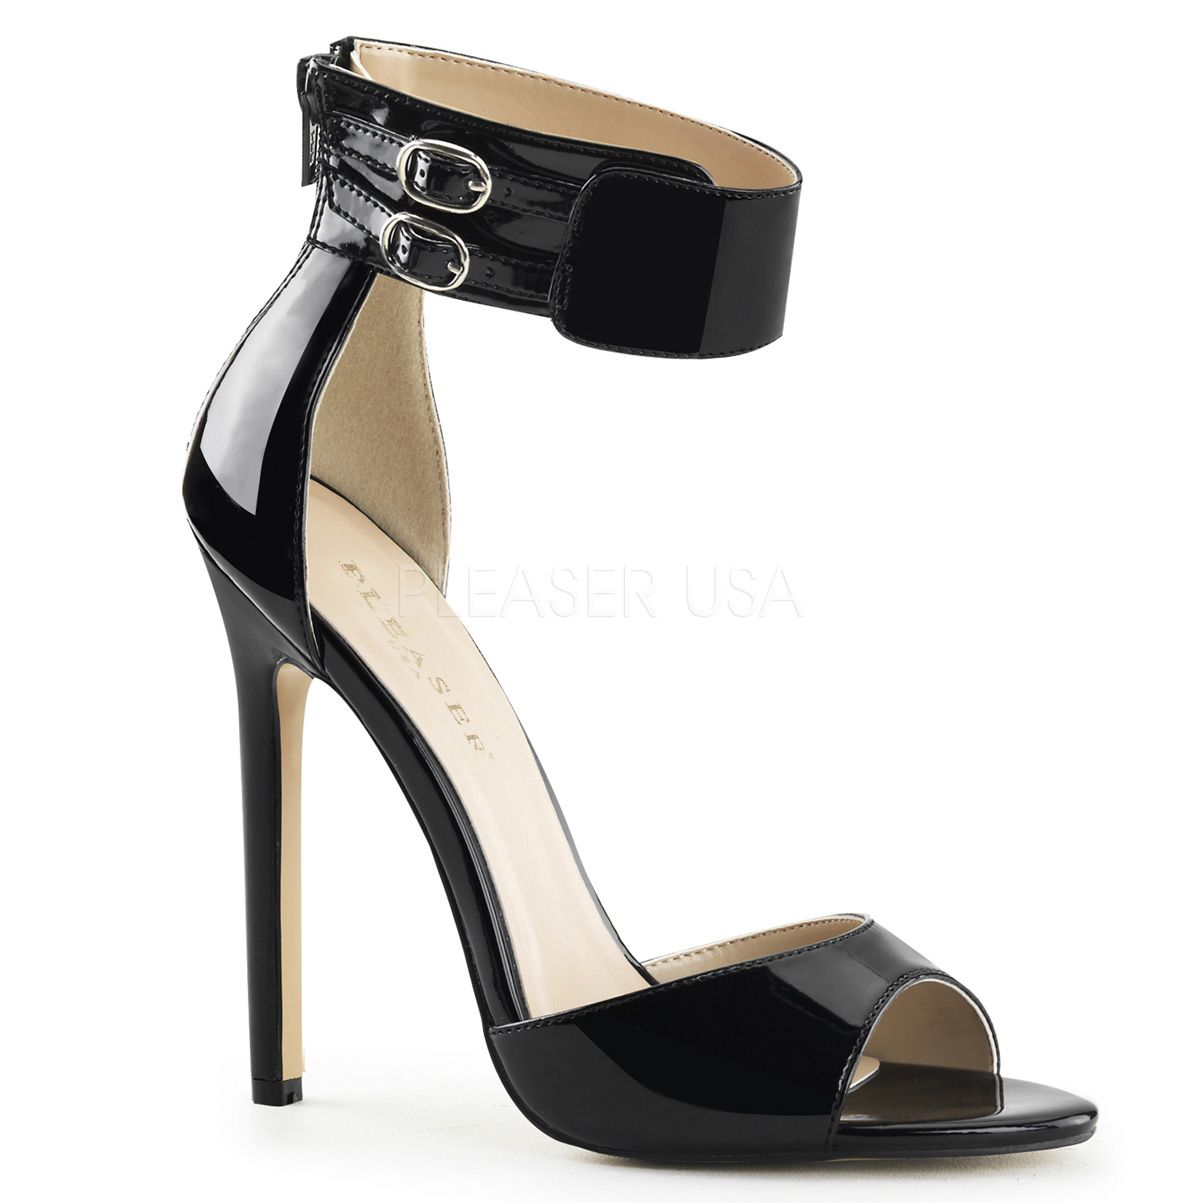 Pleaser Shoes Sexy-19 Black Patent Wide Ankle Strap Sandals With Stiletto Heels